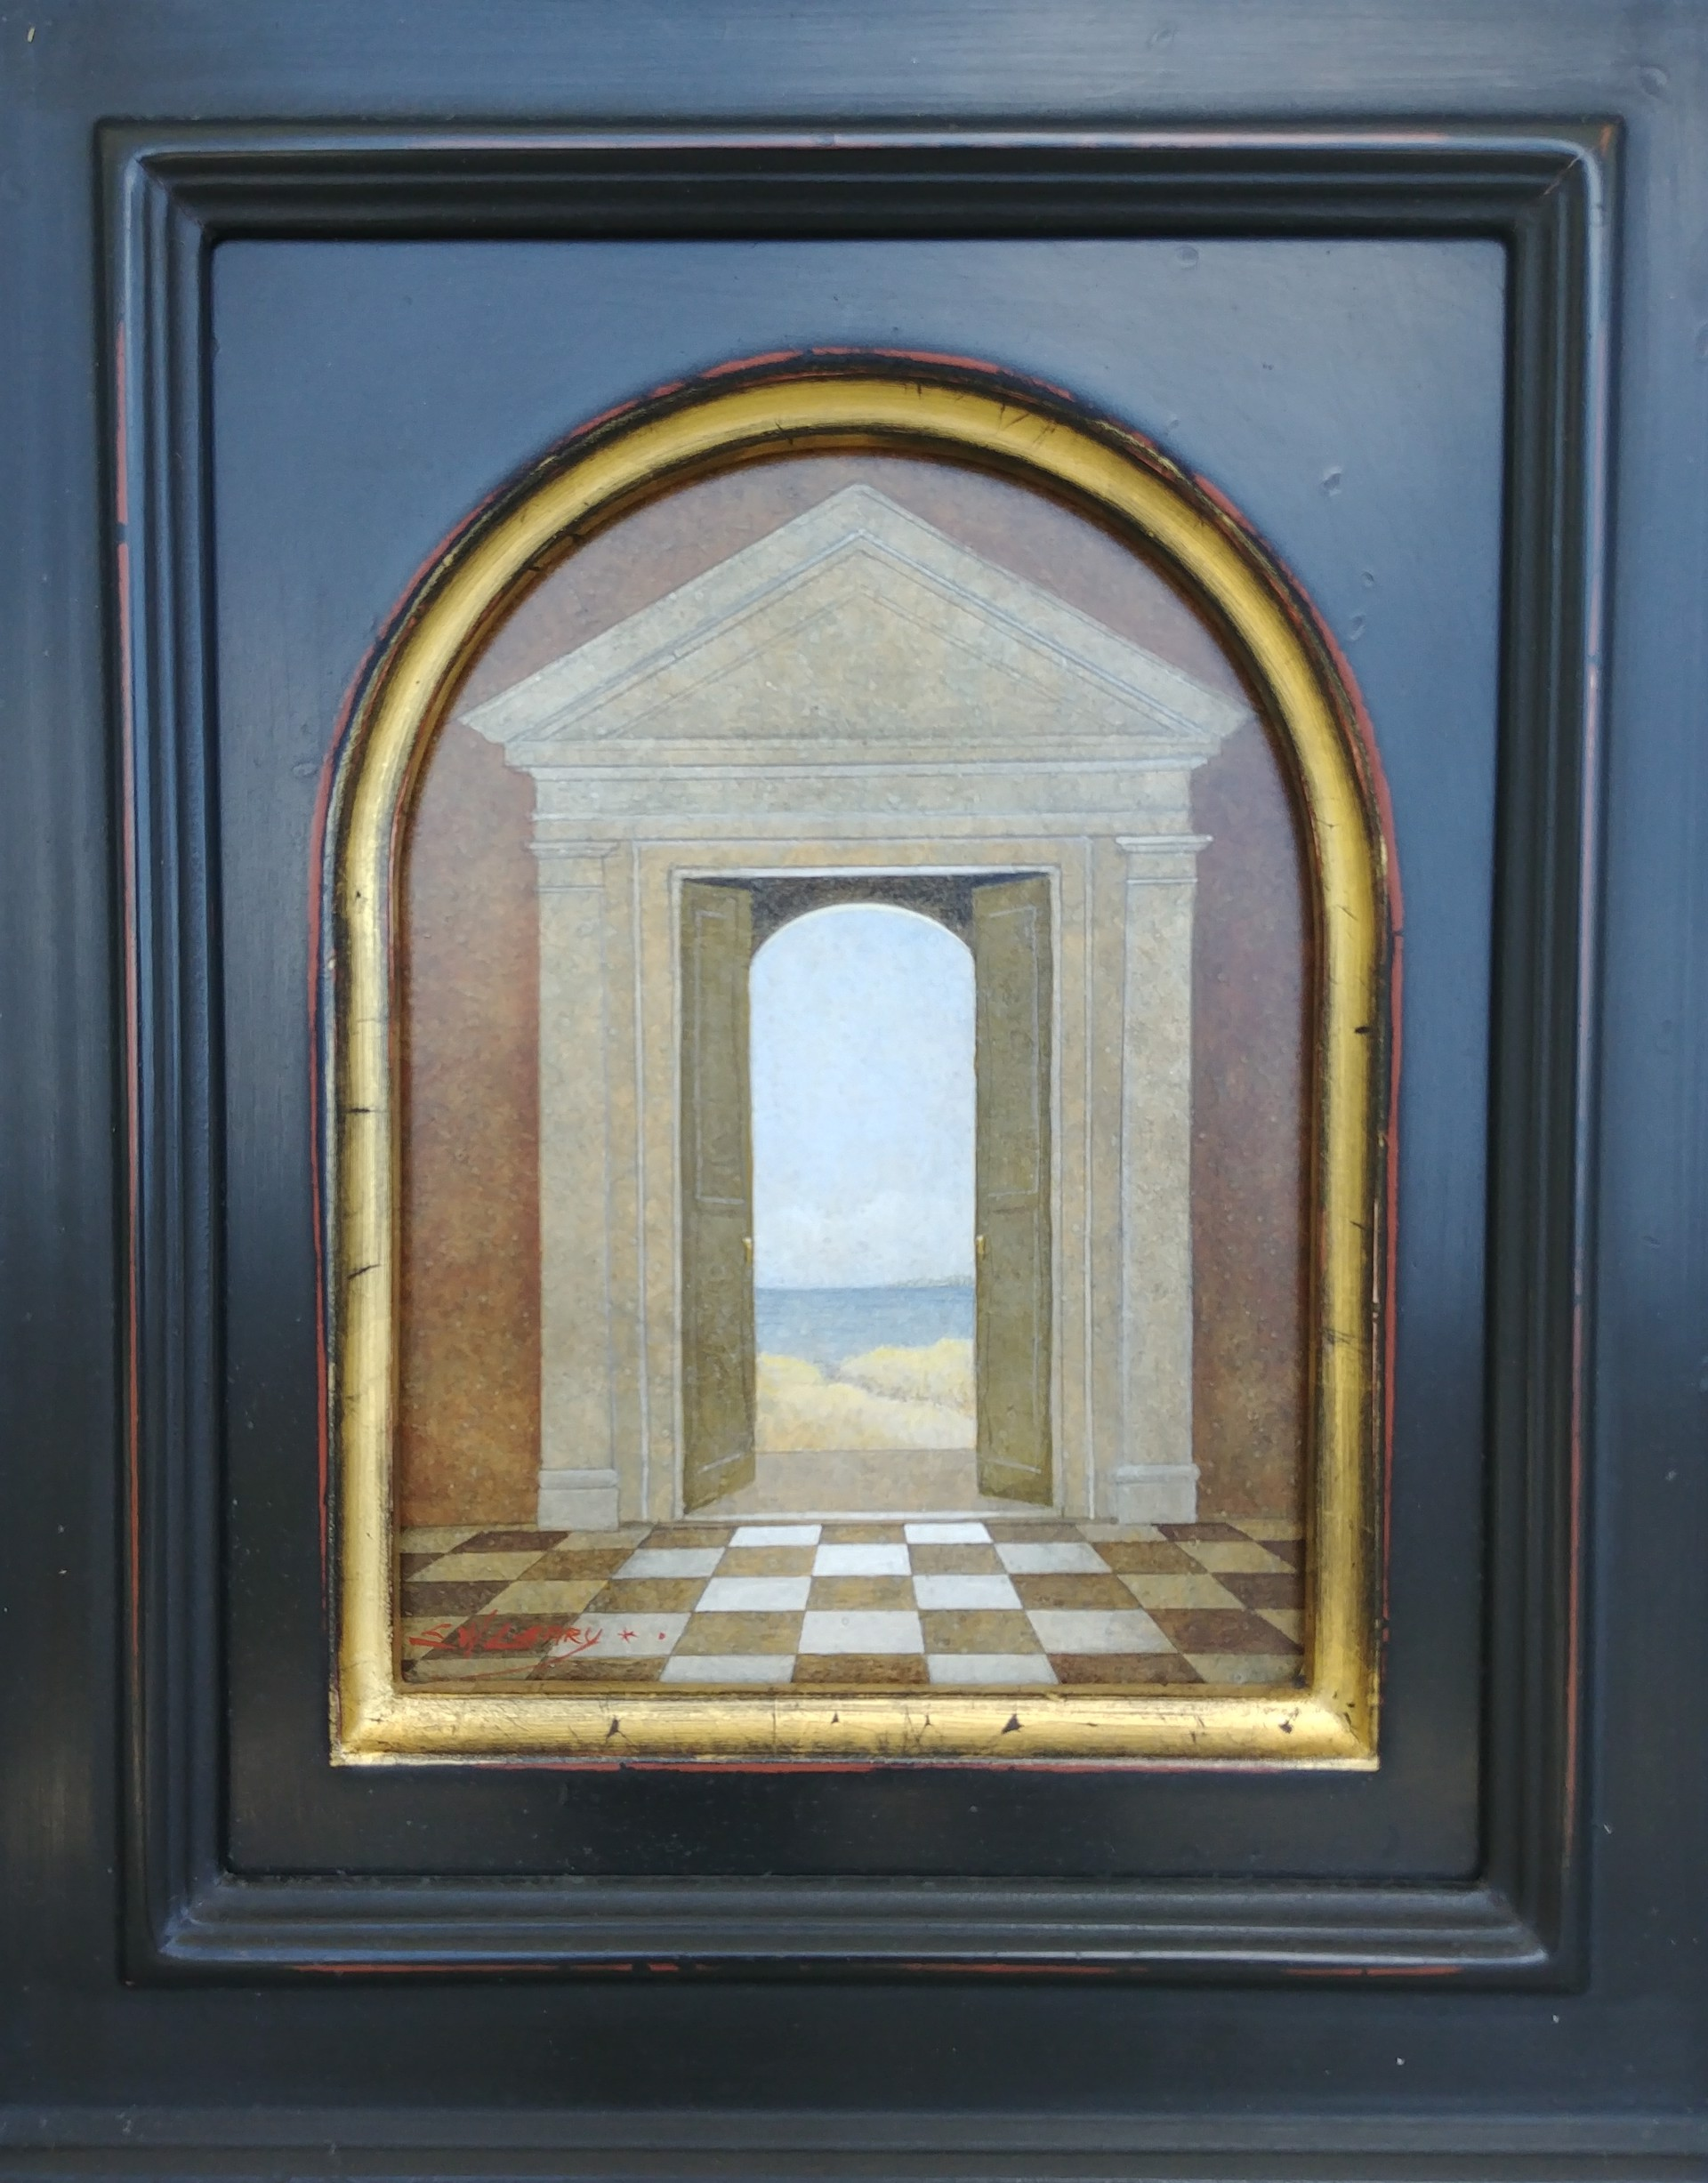 Room With a View by Elizabeth Leary